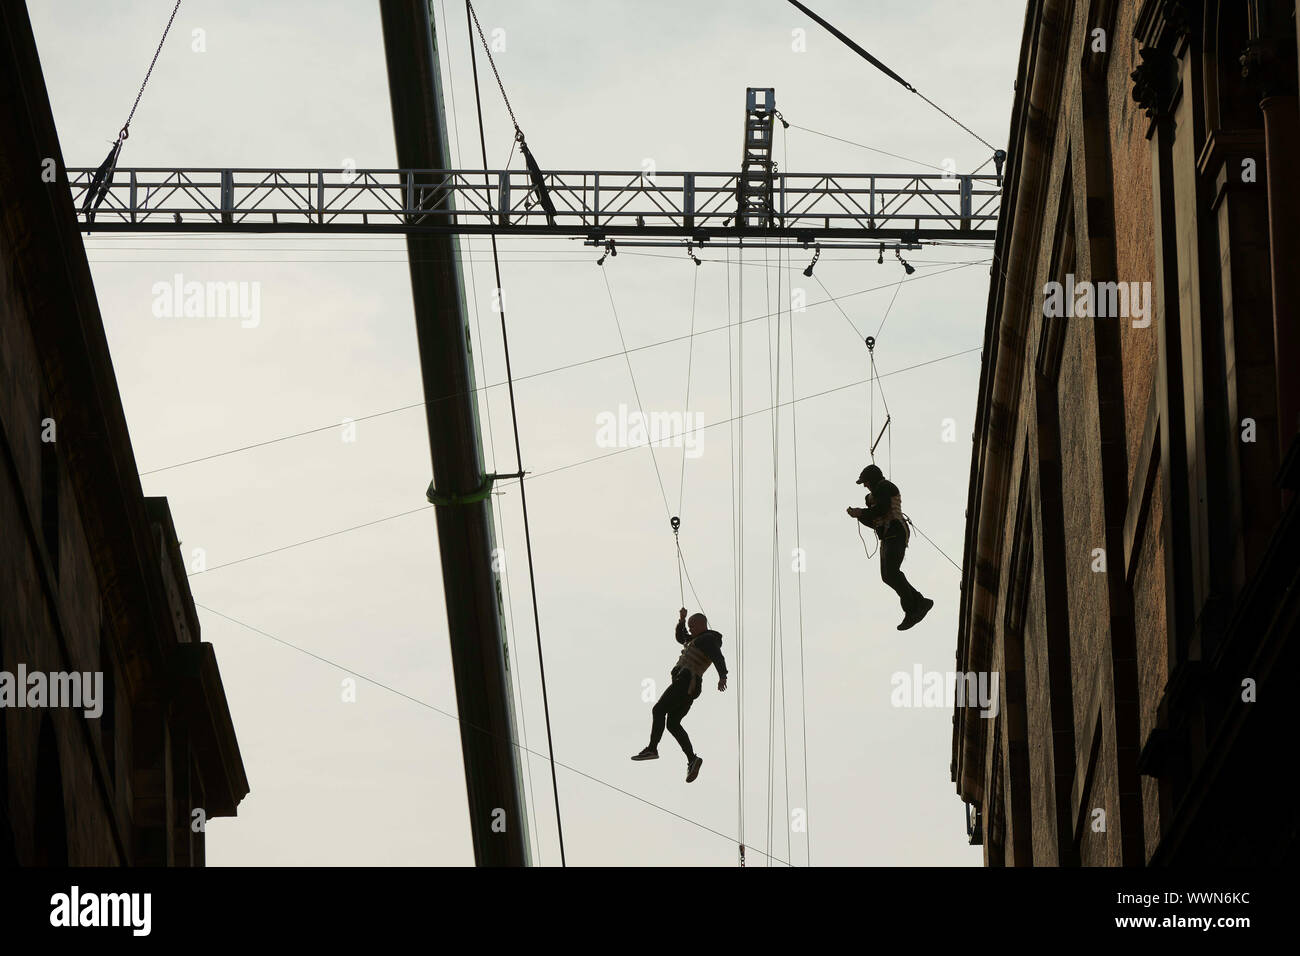 Edinburgh    September  16 2019;  A Fast and Furious 9 stuntman between the National Museum of Scotland and Edinburgh University.  The stuntman is attached to cables and appears to jump between the buildings.credit steven scott taylor / alamy live news Stock Photo